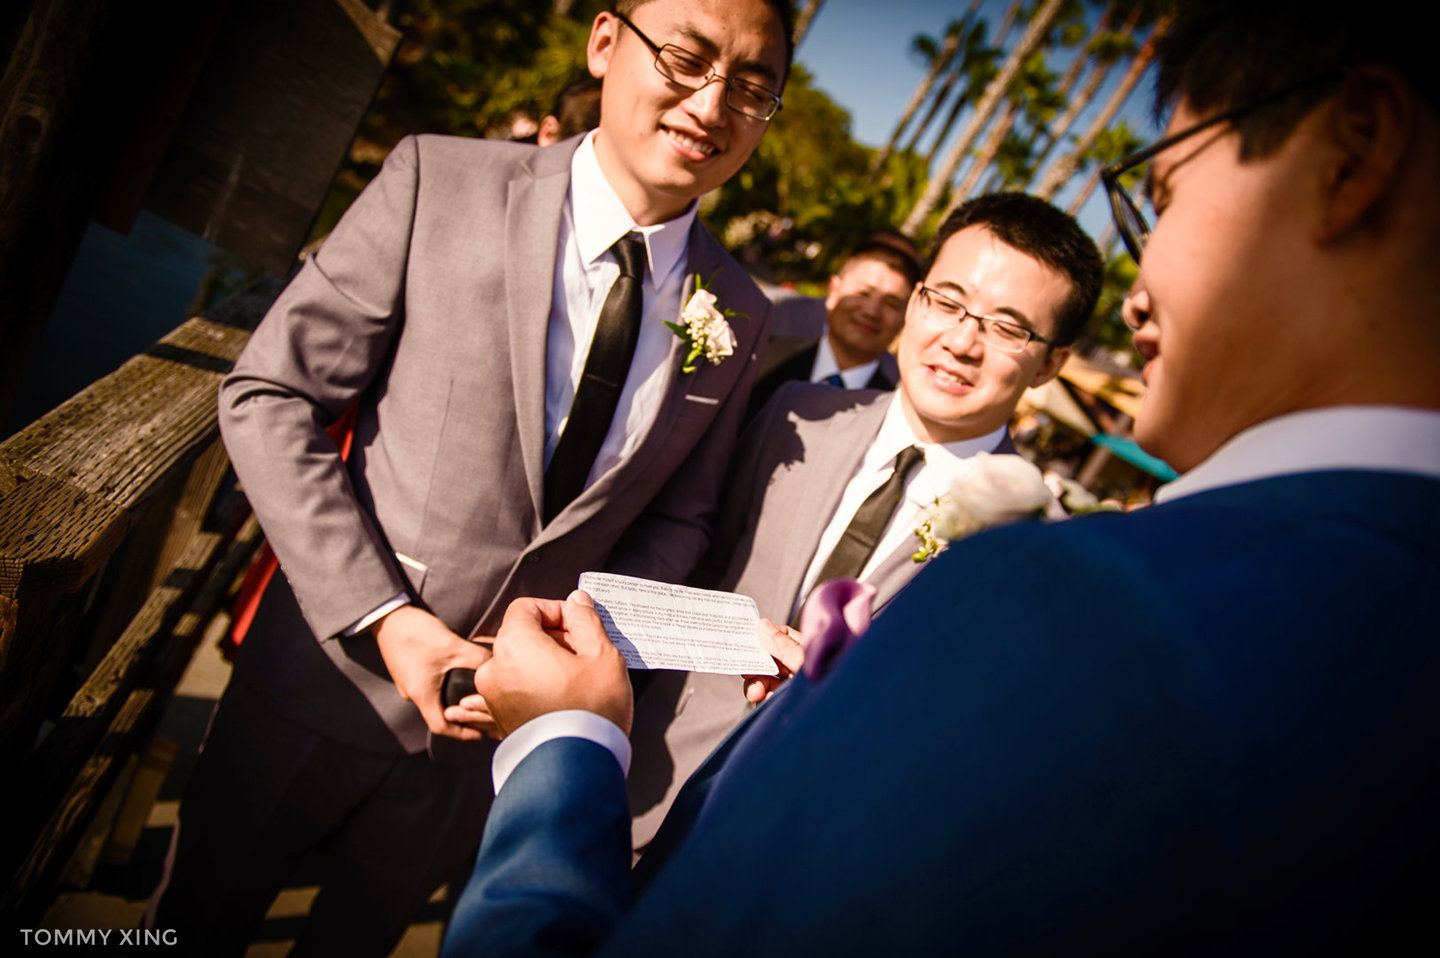 Paradise Point Resort Wedding Xiaolu & Bin San Diego 圣地亚哥婚礼摄影跟拍 Tommy Xing Photography 洛杉矶婚礼婚纱照摄影师 088.jpg